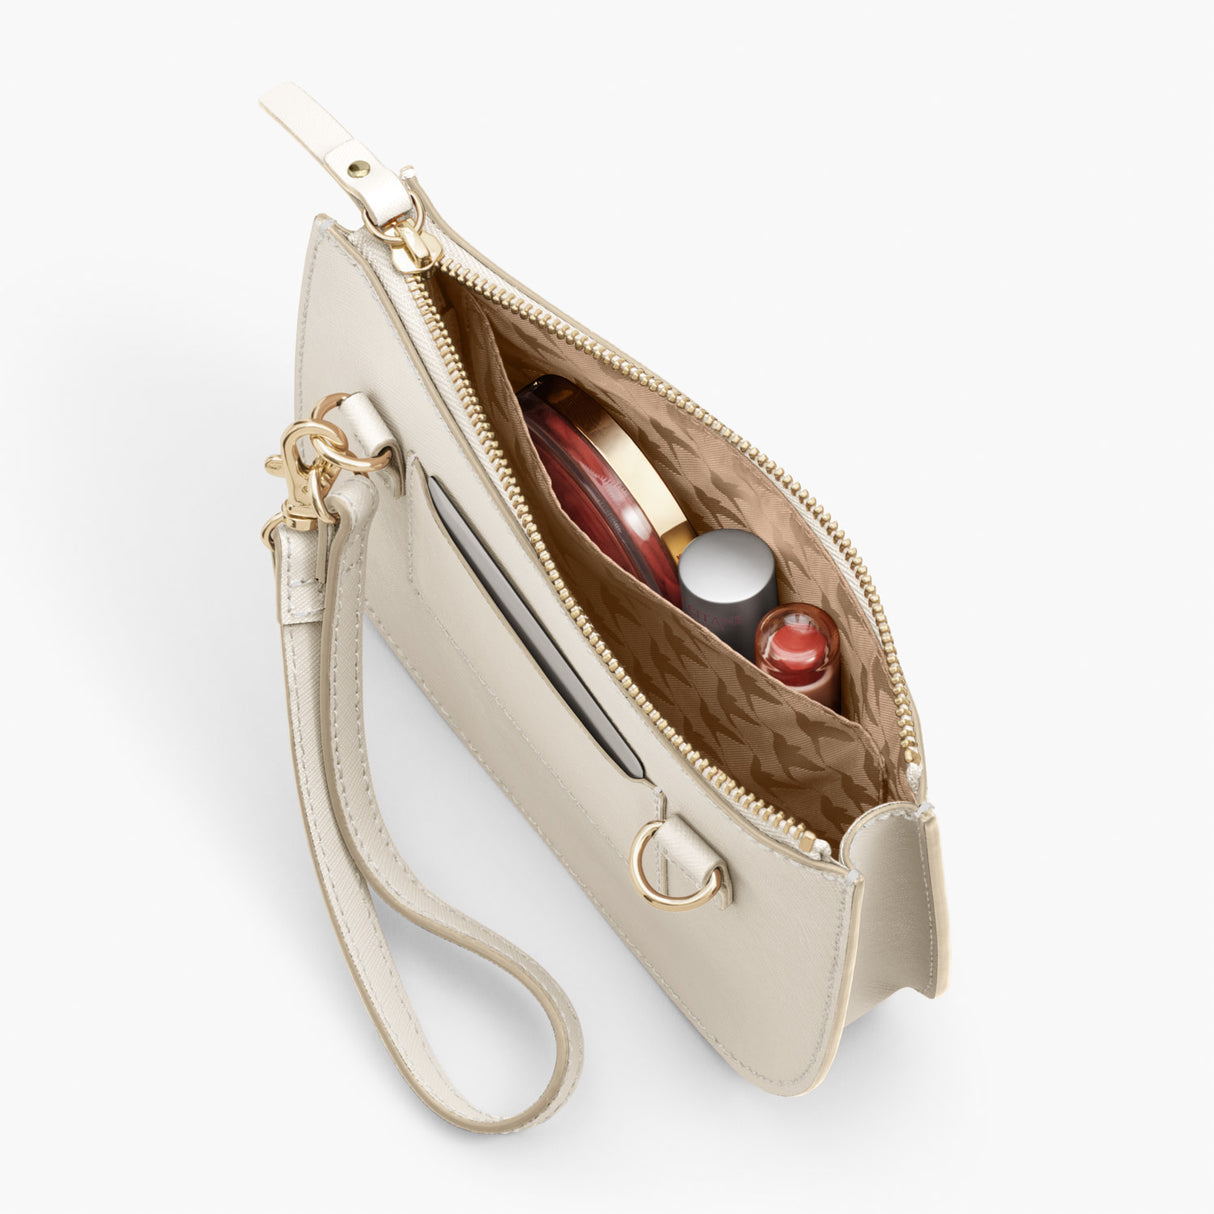 Pockets Crossbody - The Waverley 2 - Saffiano Leather - Ivory / Gold / Camel - Crossbody - Lo & Sons